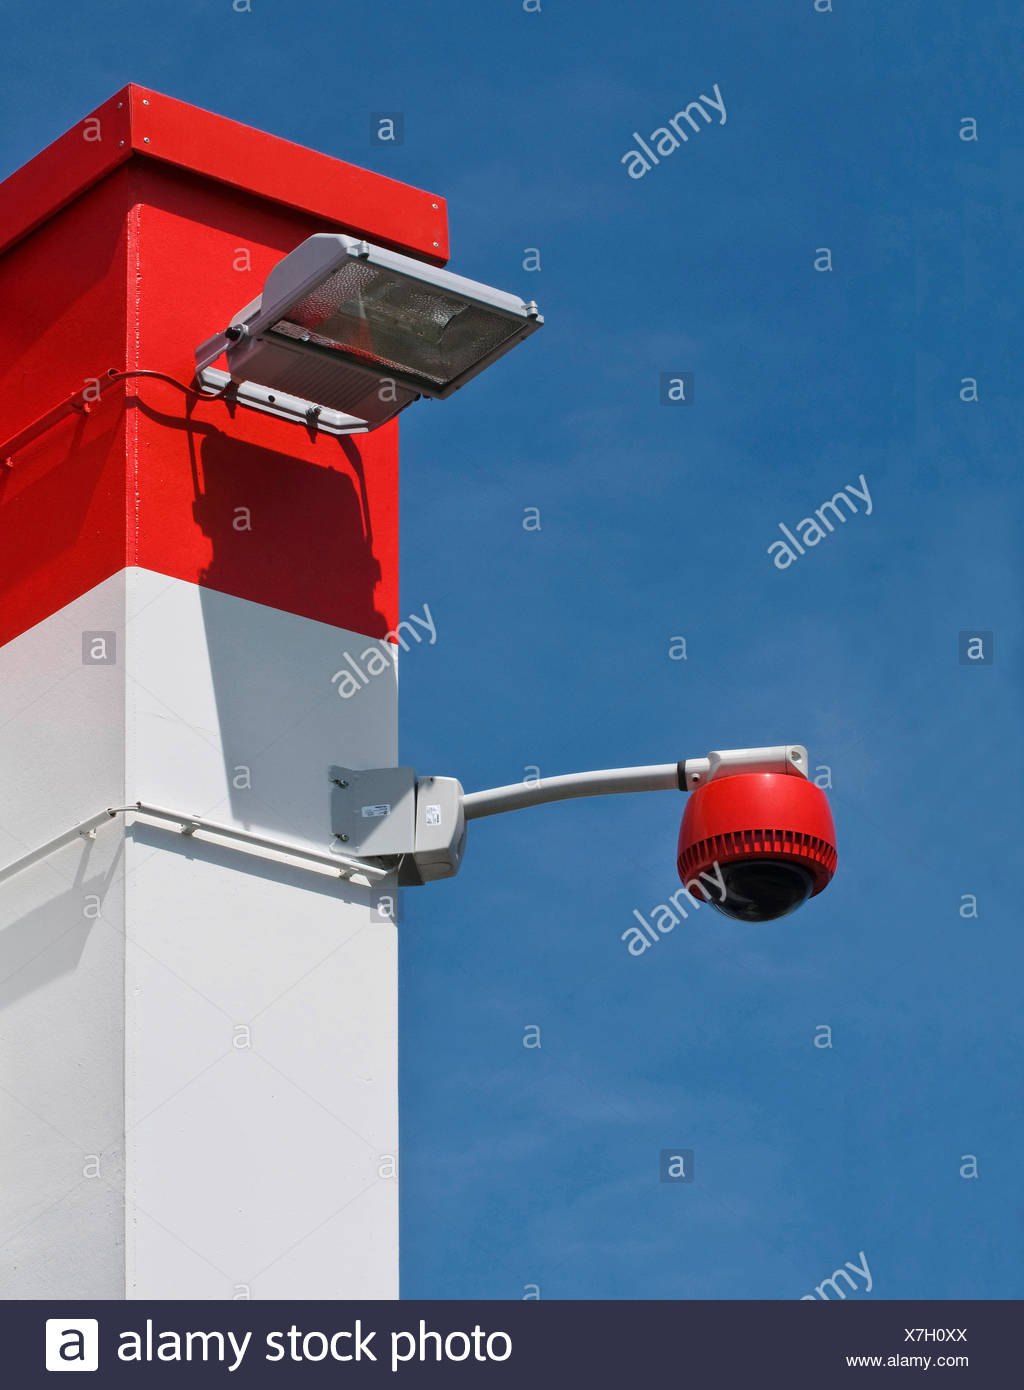 360-degree camera on wall against blue sky, monitoring, security, PublicGround - Stock Image